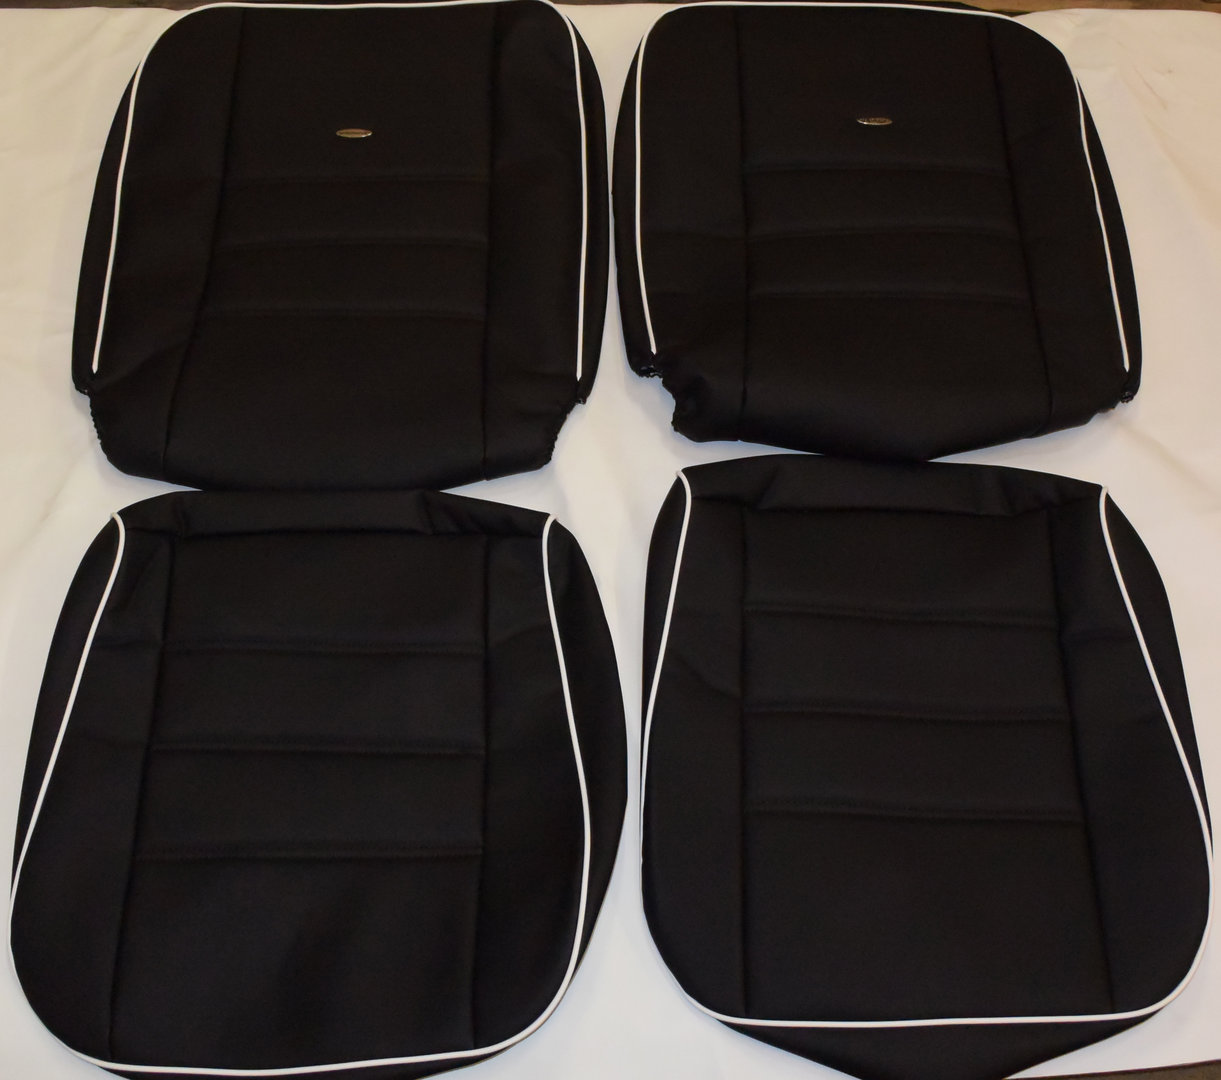 vw beetle interior volkswagen rear seat covers padding seats bug front classic changed